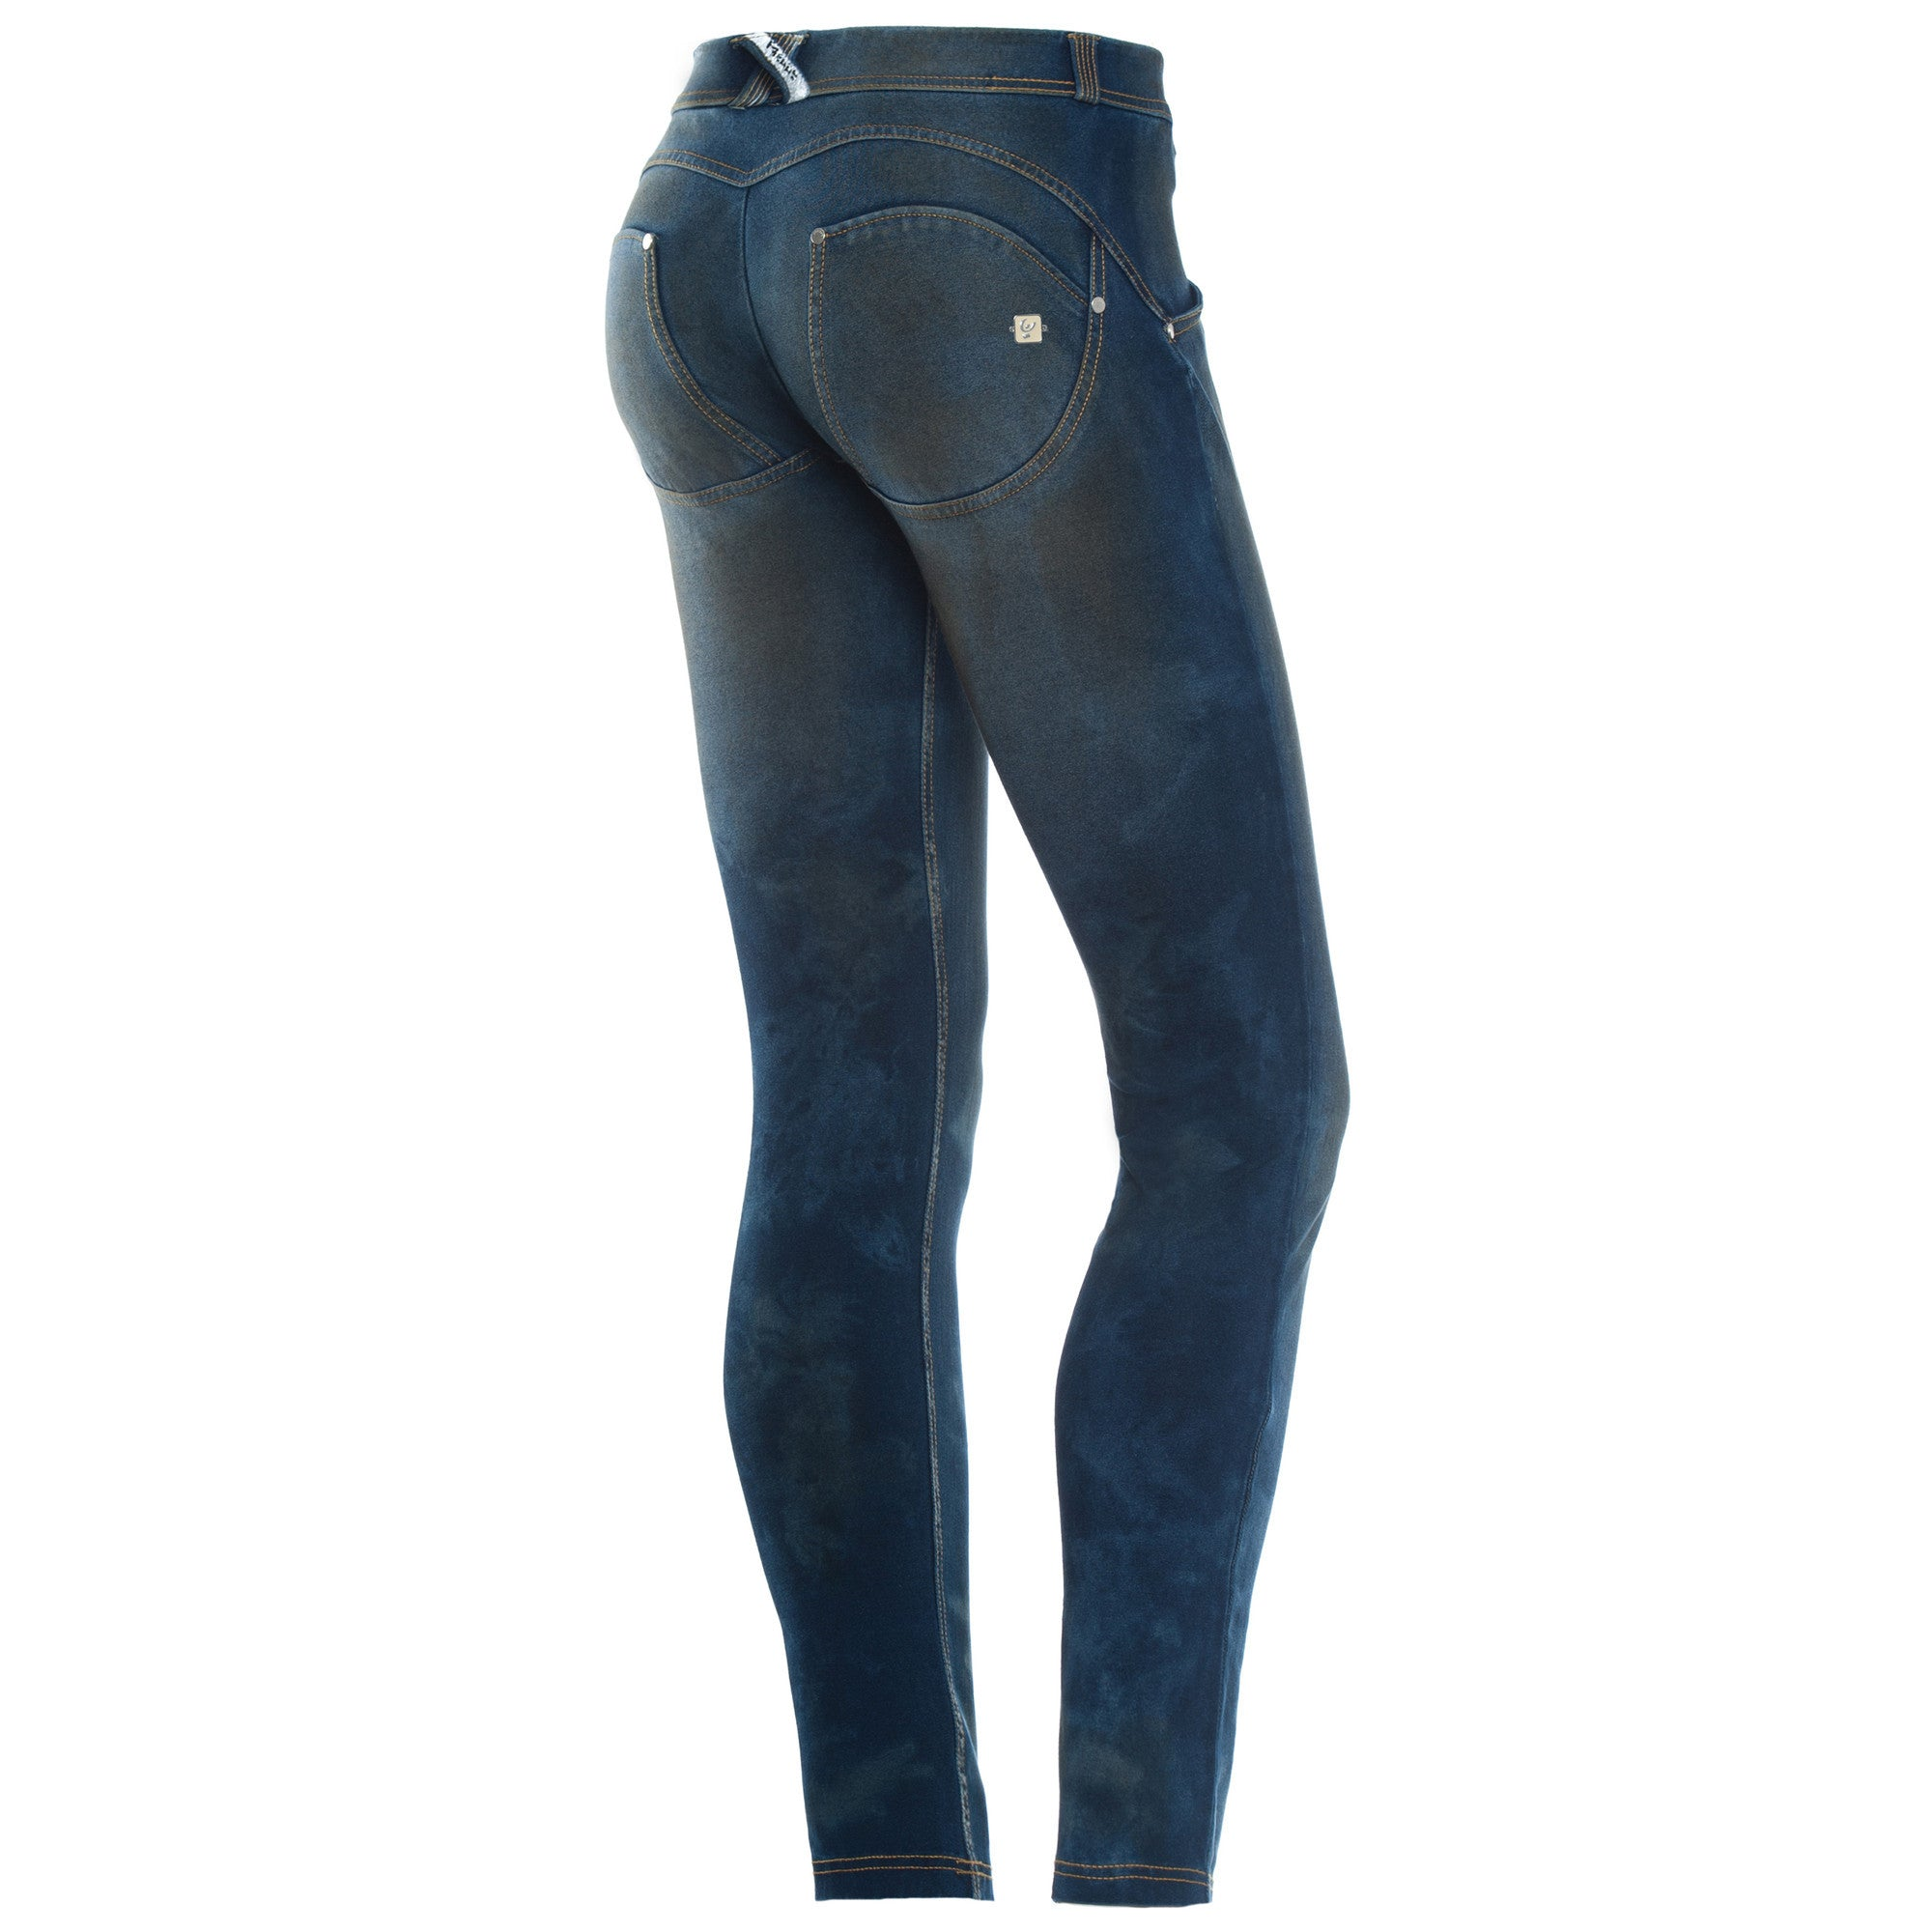 WR.UP® Denim - Low Rise Full Length Dirty Finish - Dark Rinse